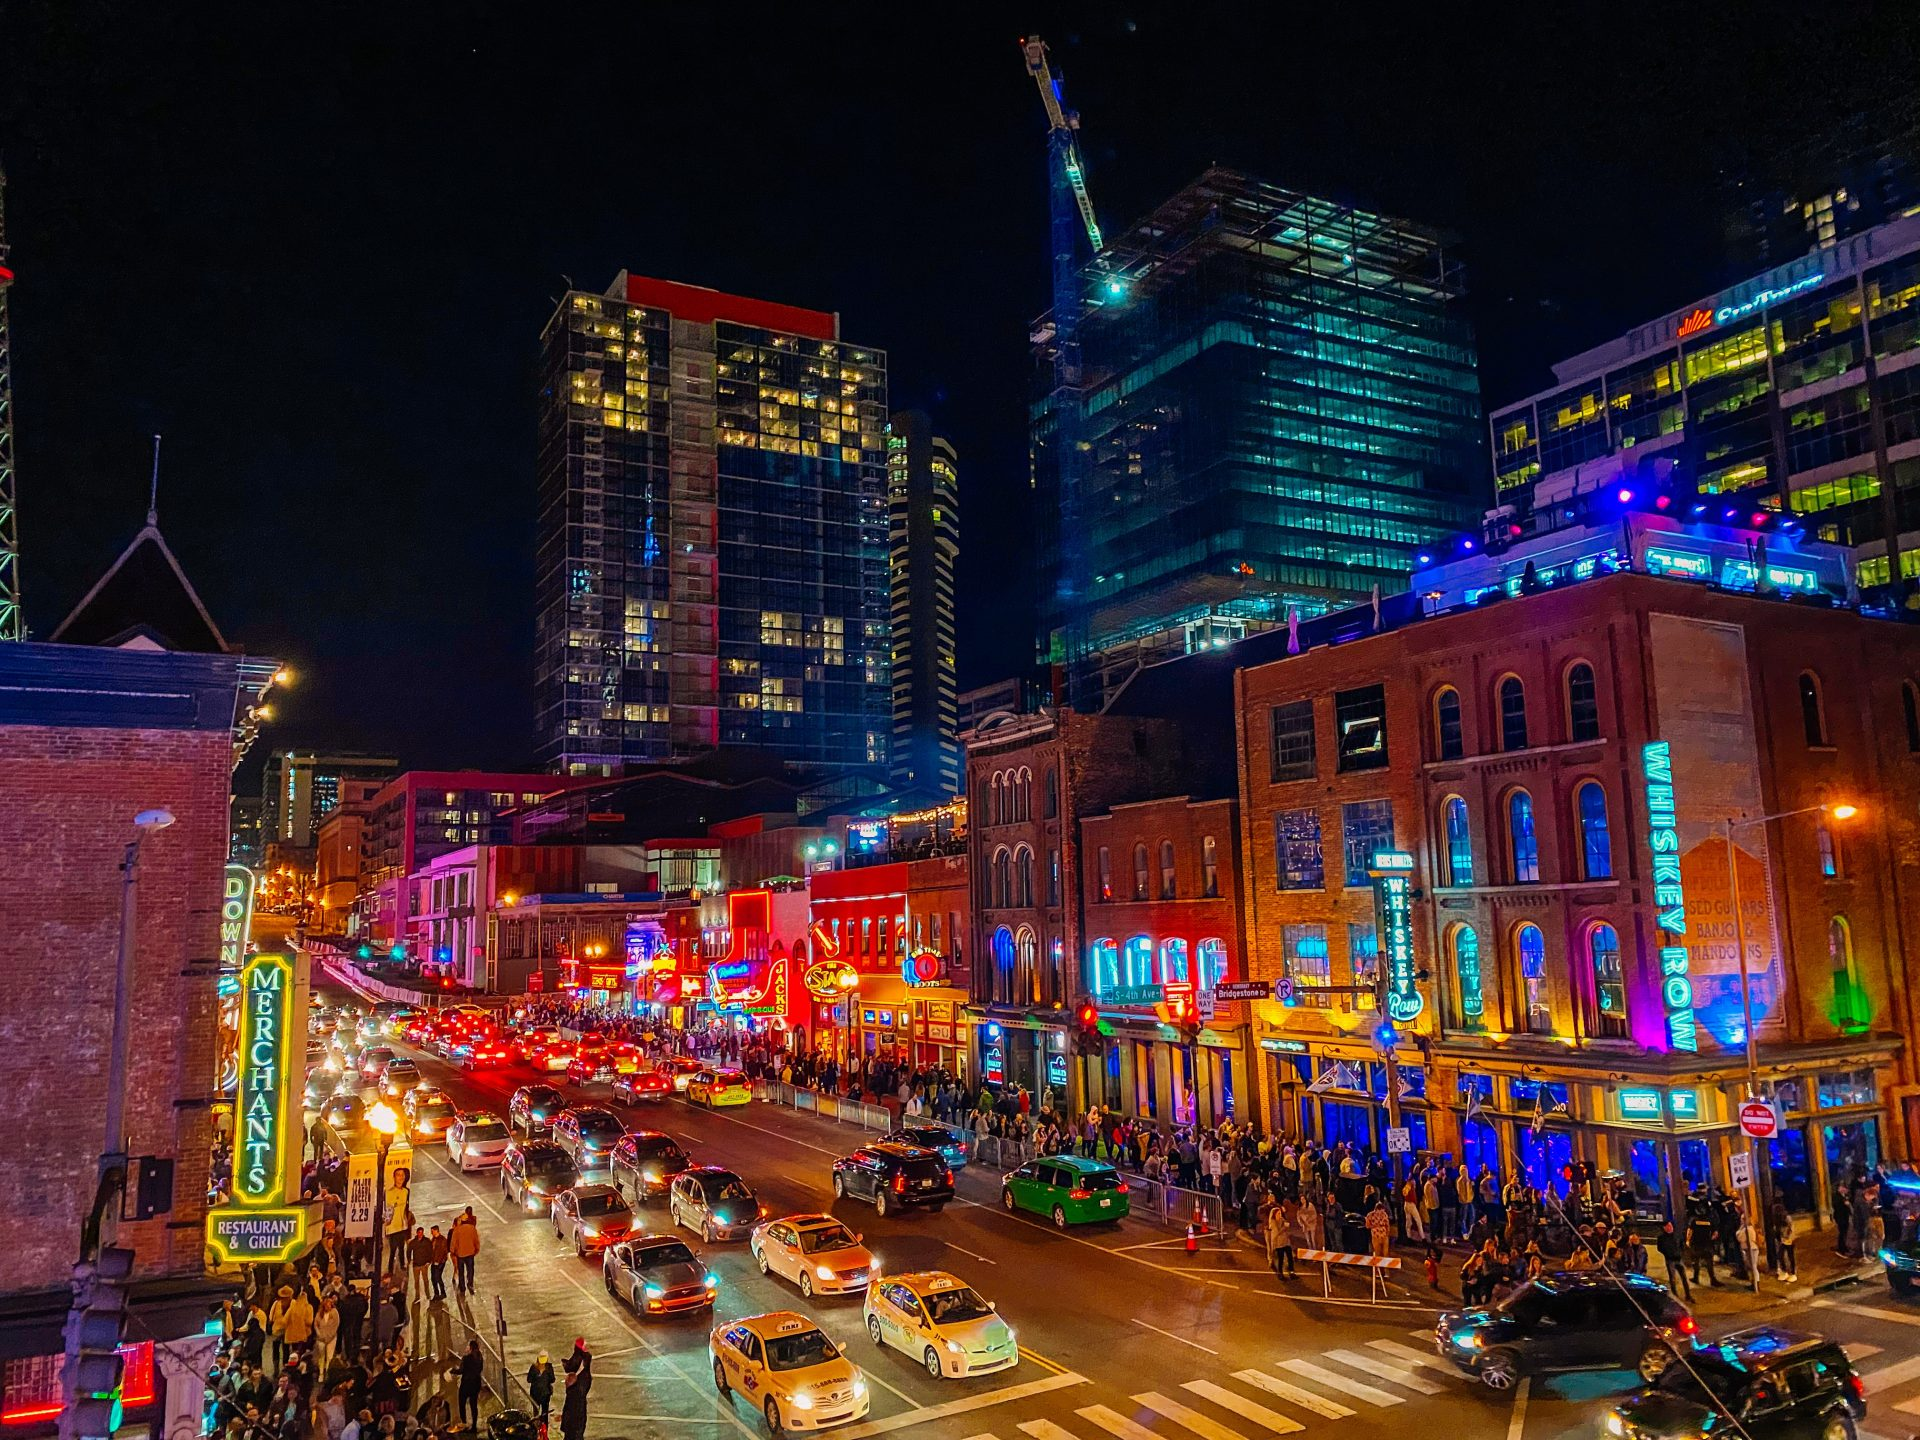 The view from honky tonk central an establishment/bar on Broadway street in downtown Nashville Tennessee. Nighttime bright lights and the music scene.